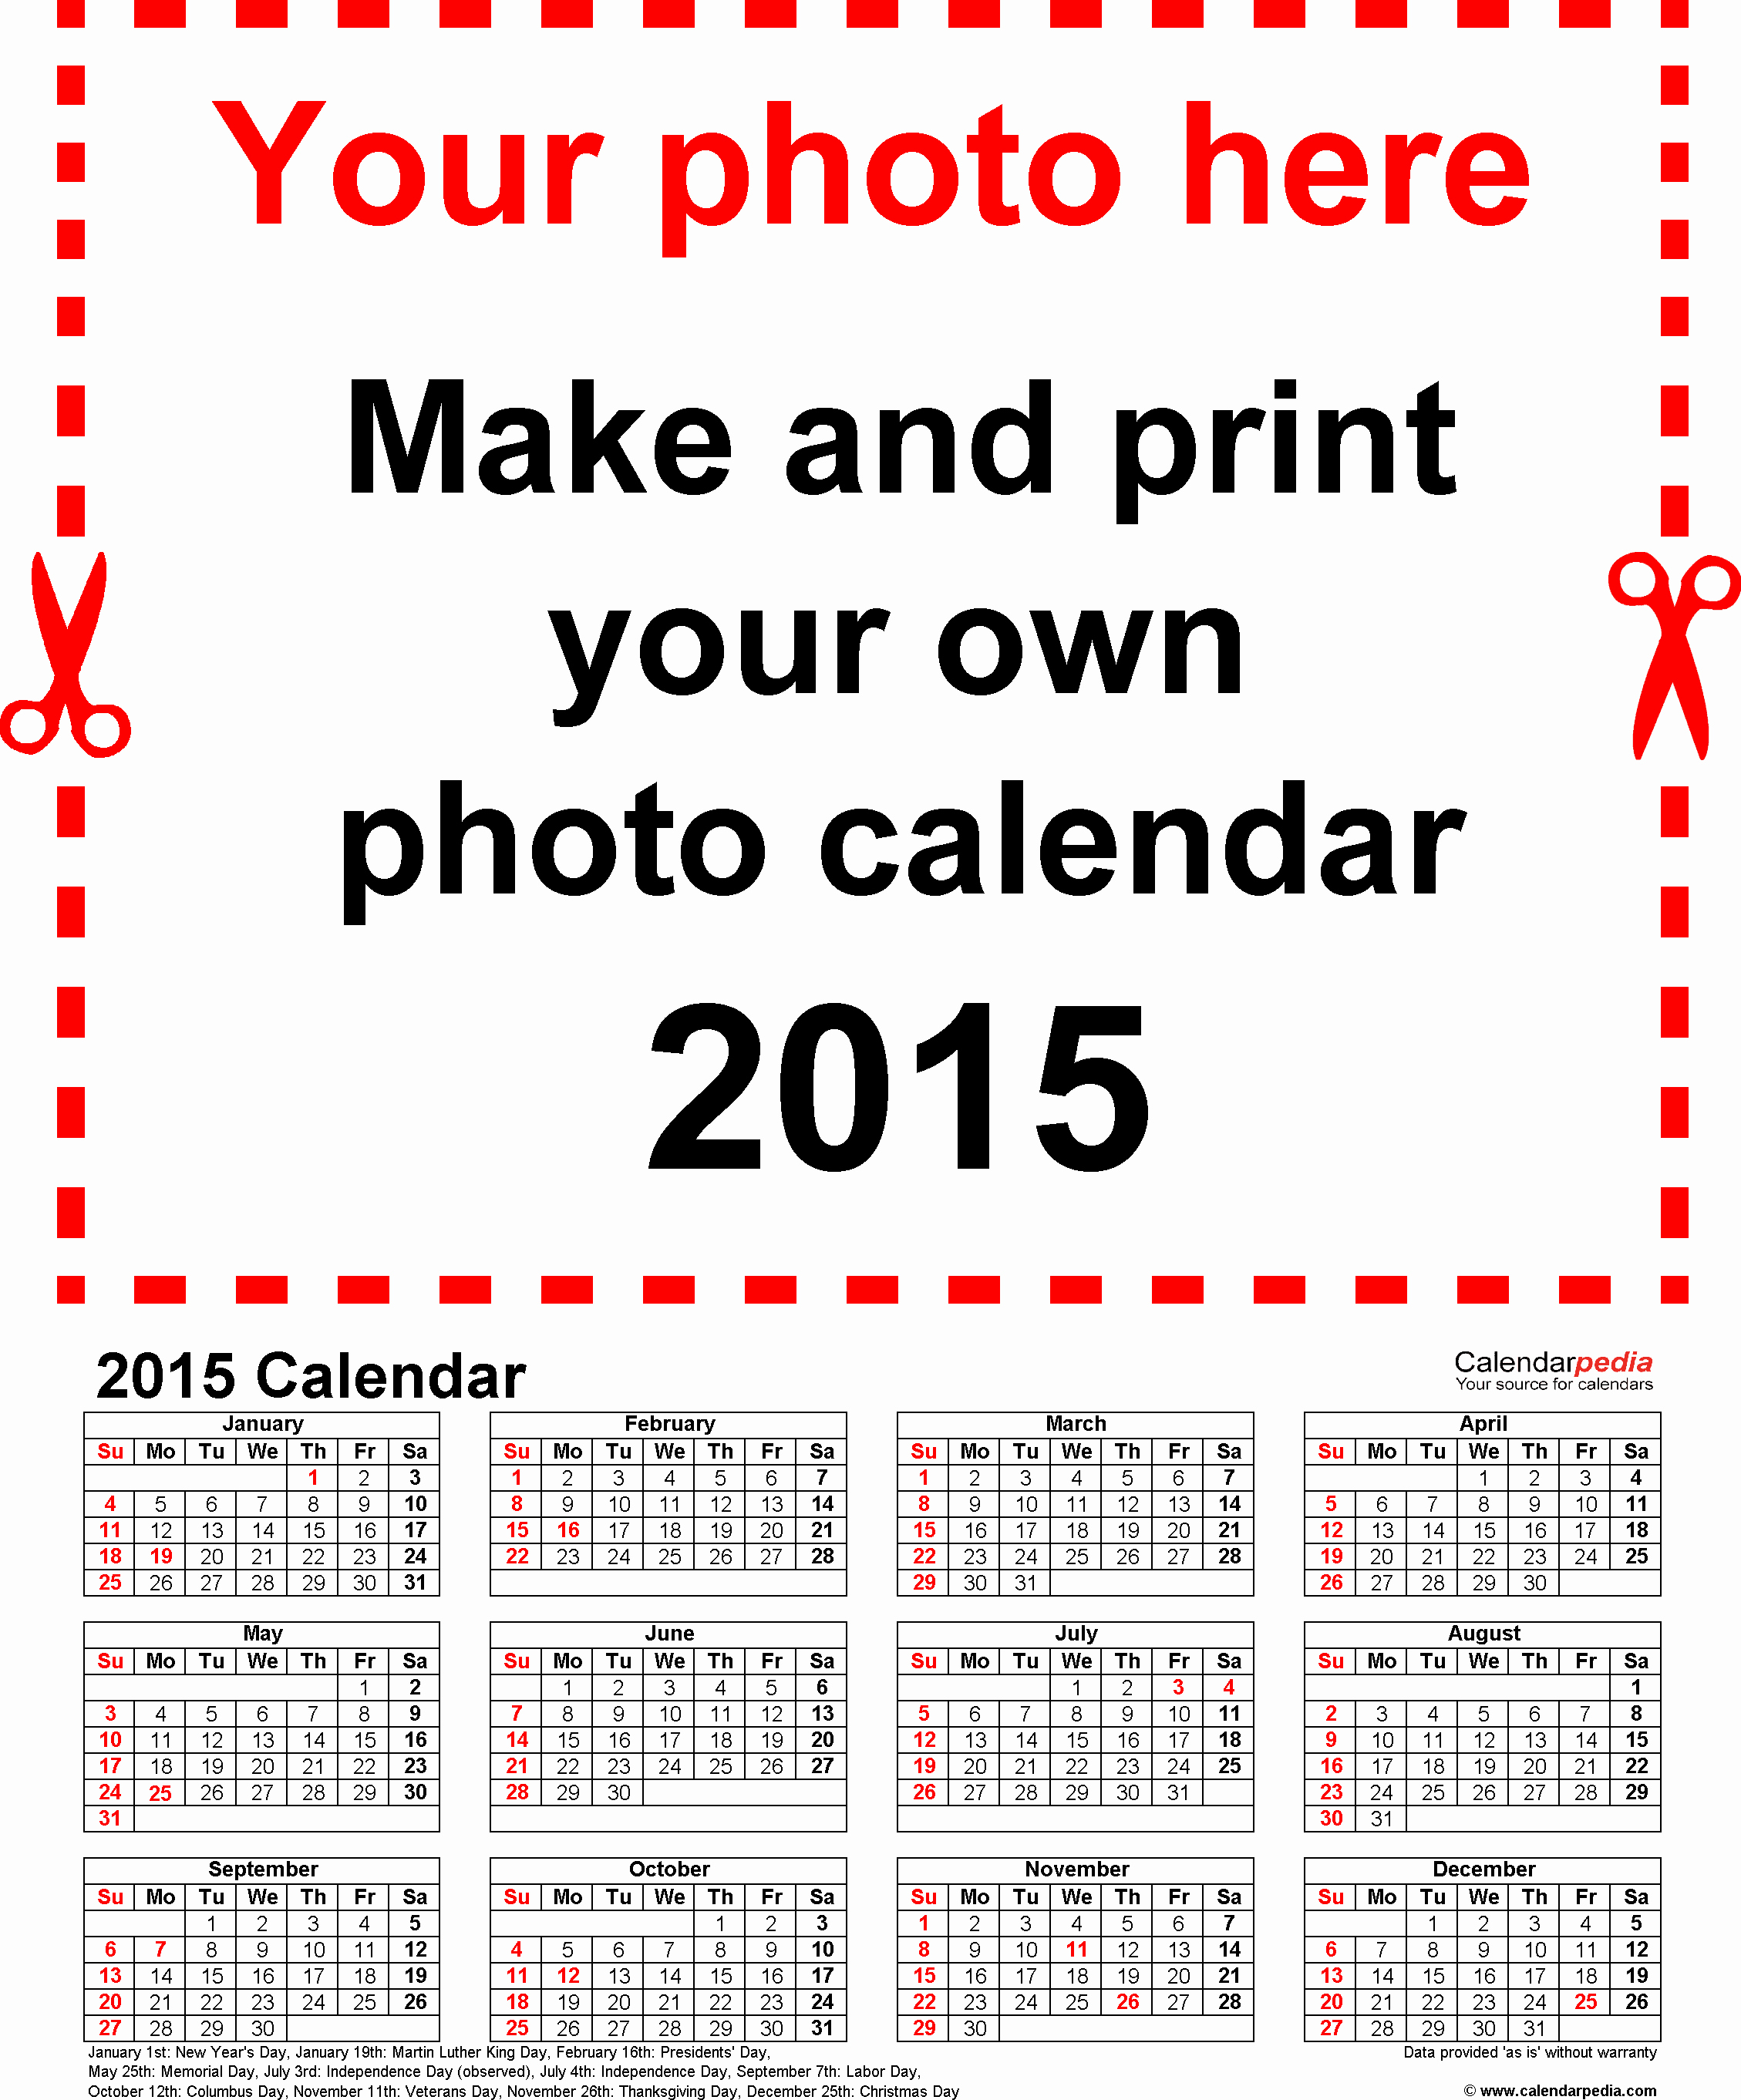 Free Yearly Calendar Templates 2015 Unique Printable Yearly Calendar 2015 – 2017 Printable Calendar